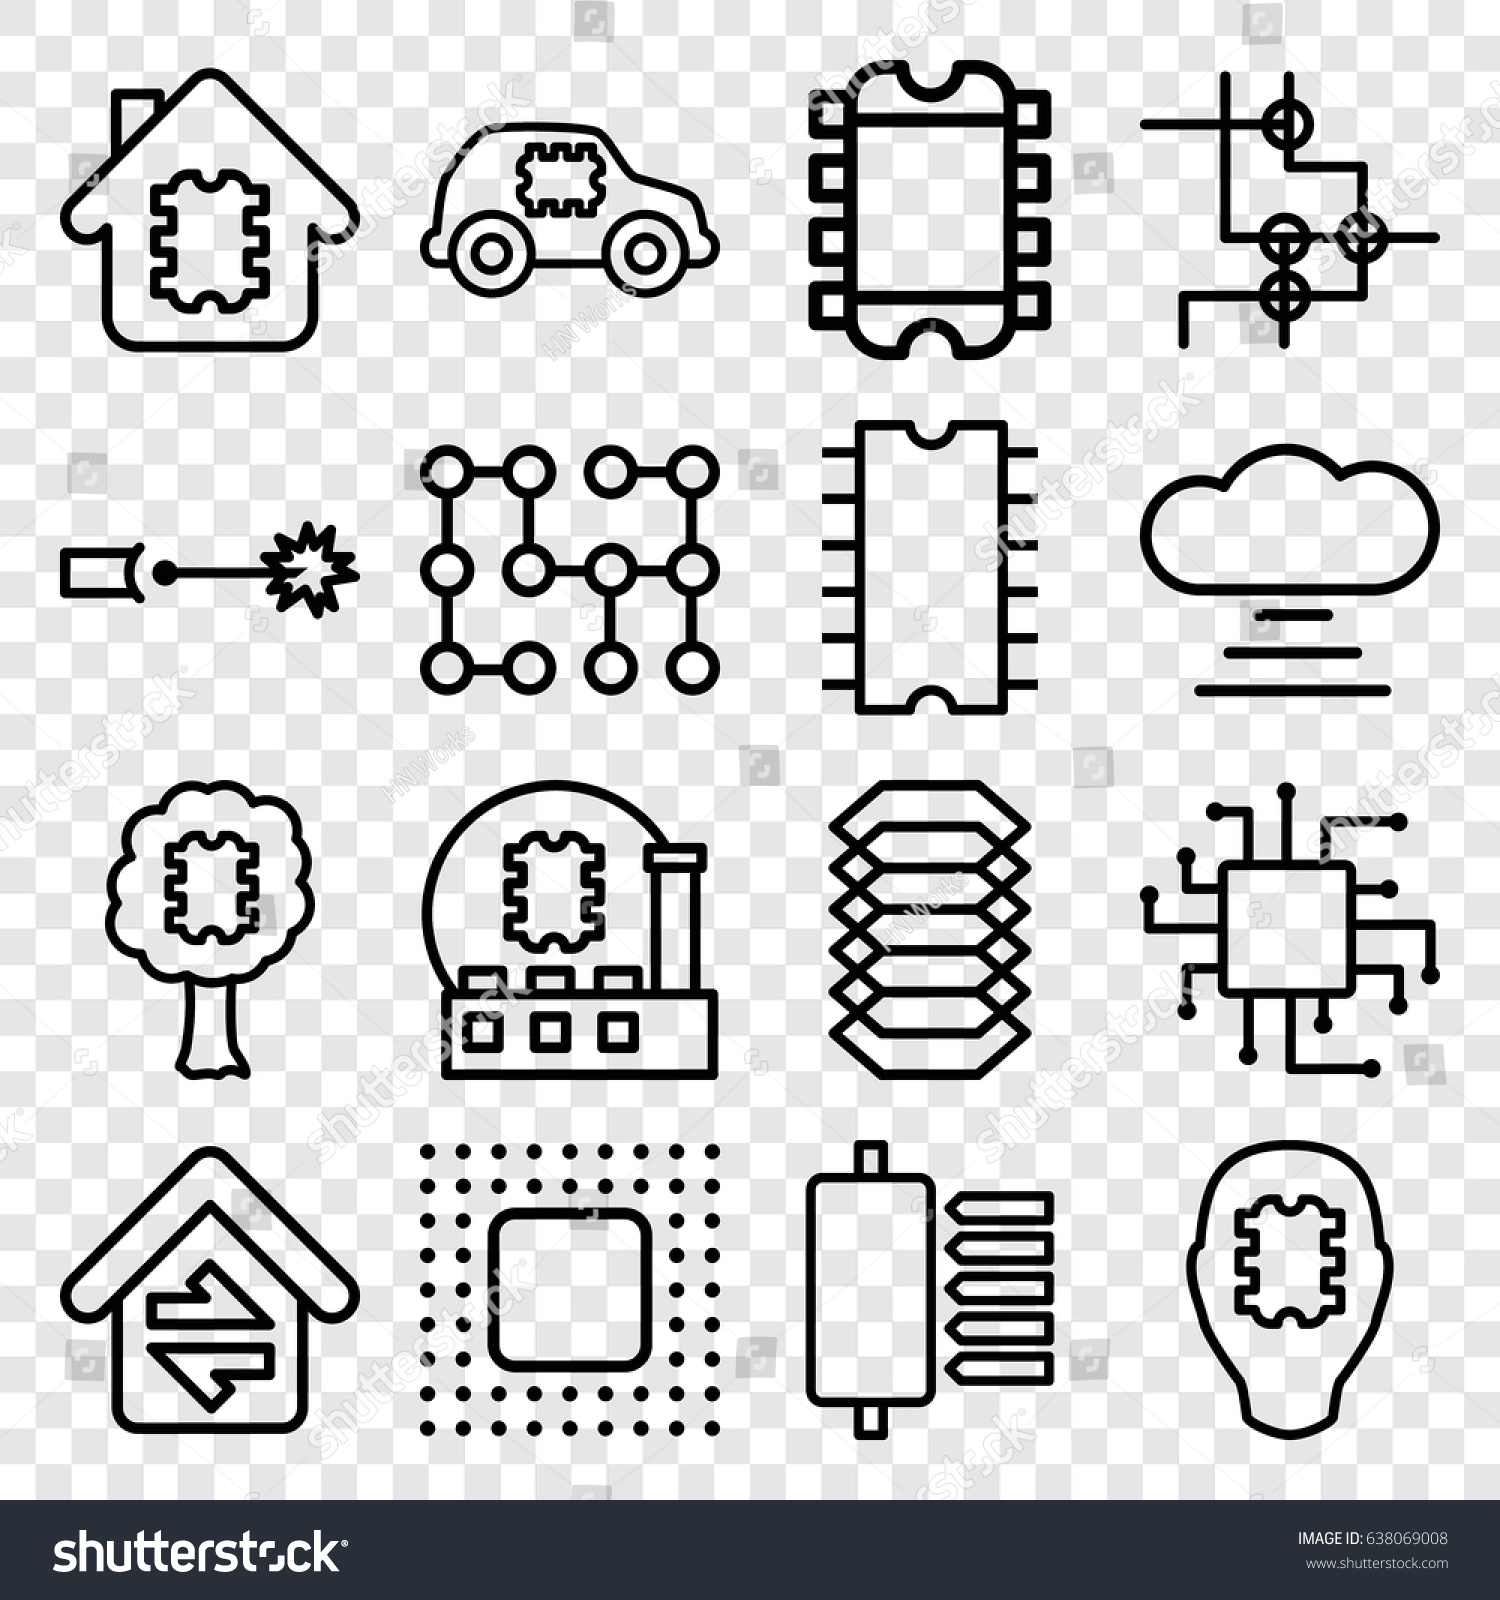 Circuit Icons Set Set 16 Circuit Stock Vector 638069008 - Shutterstock